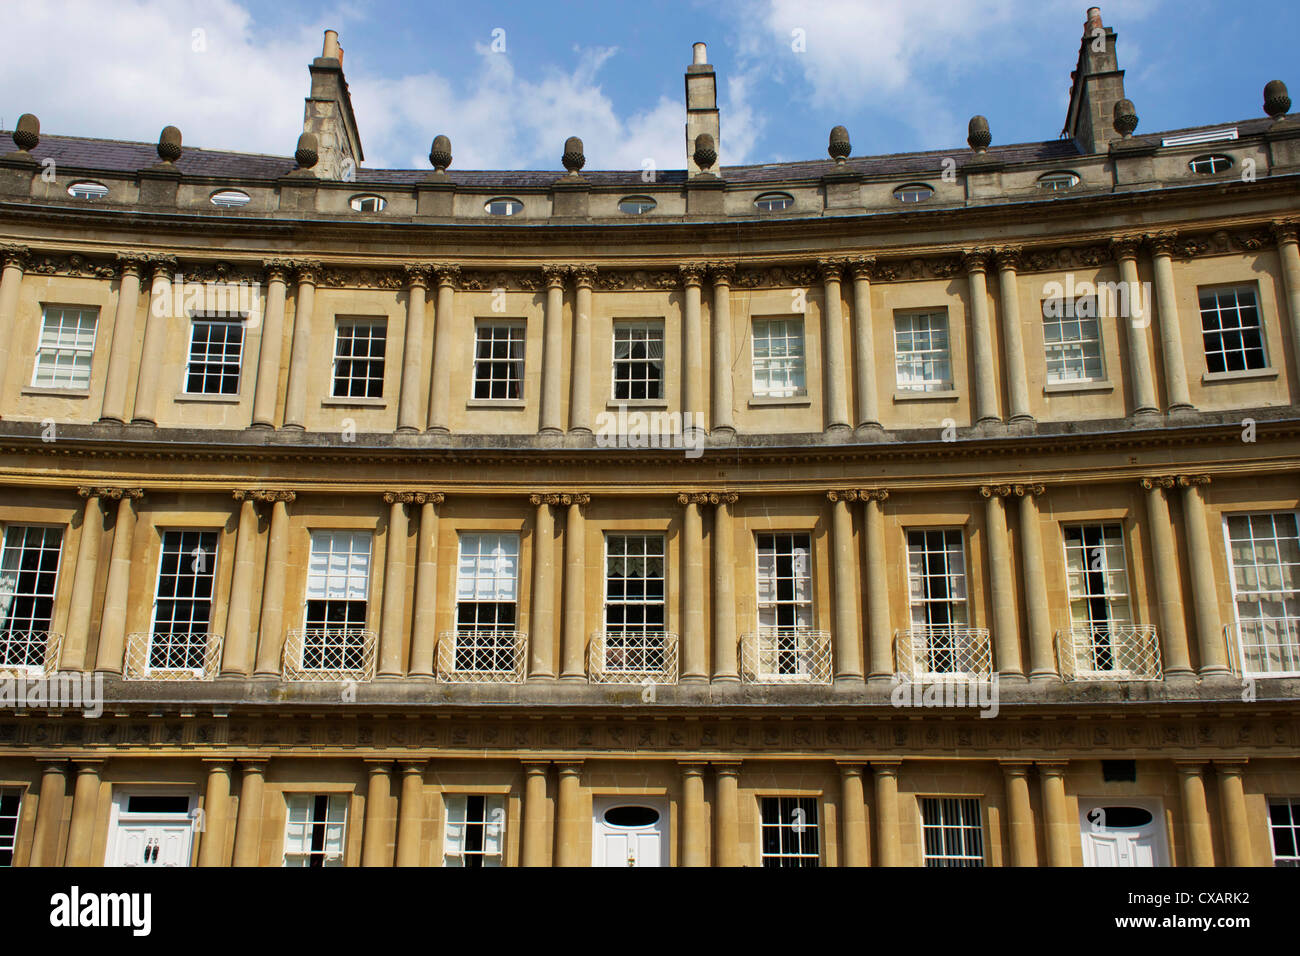 The Circus, Bath, UNESCO World Heritage Site, Avon, England, United Kingdom, Europe - Stock Image